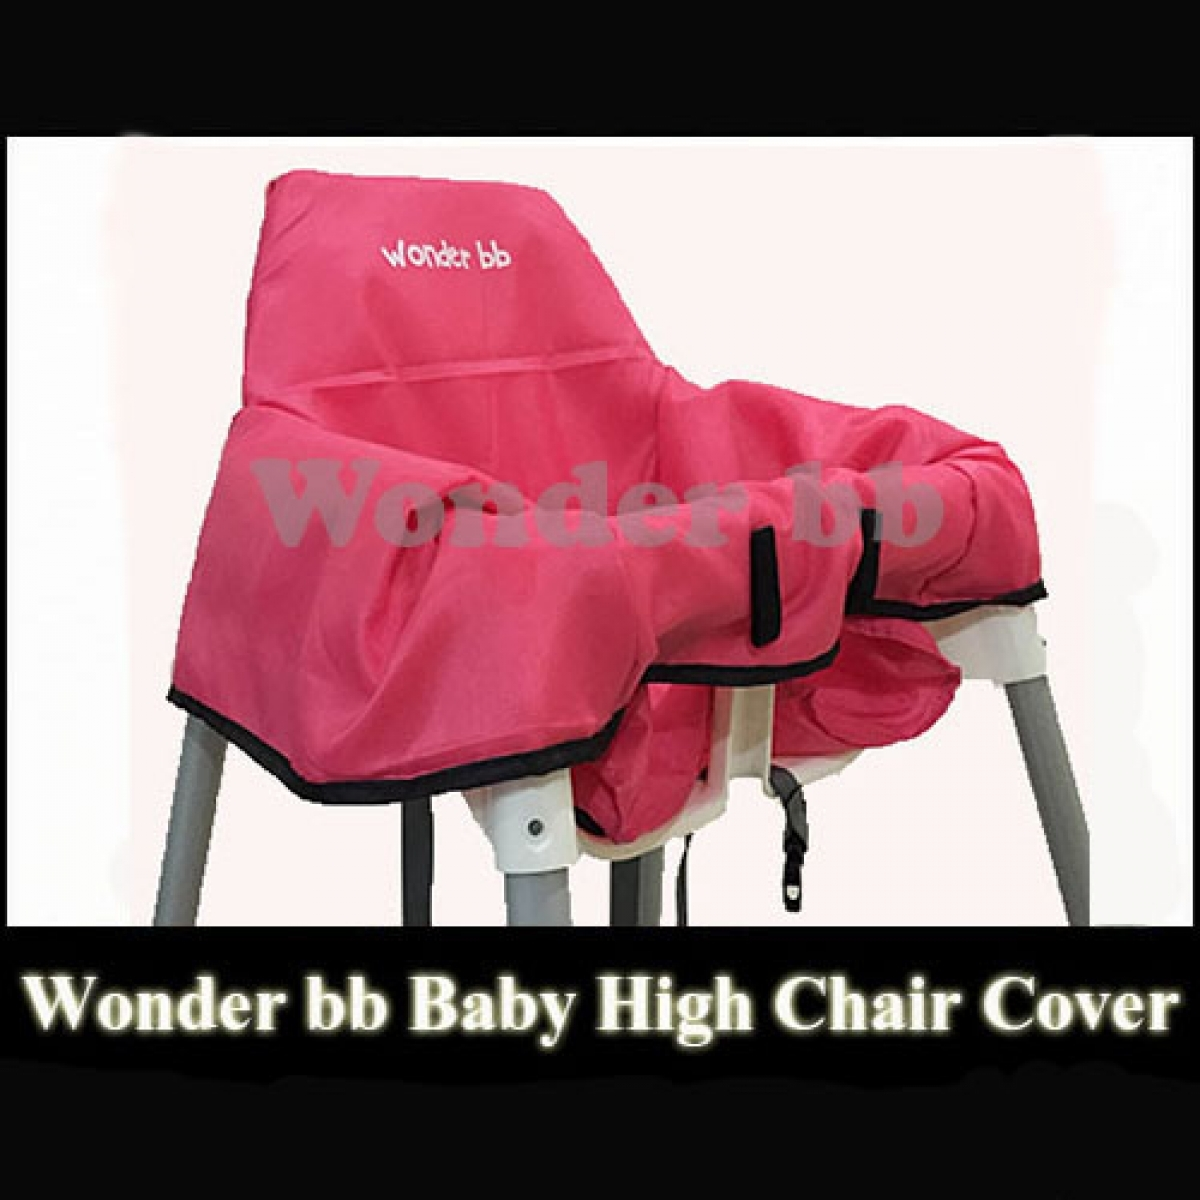 chair covers for baby comfortable pc gaming wonder bb high cover